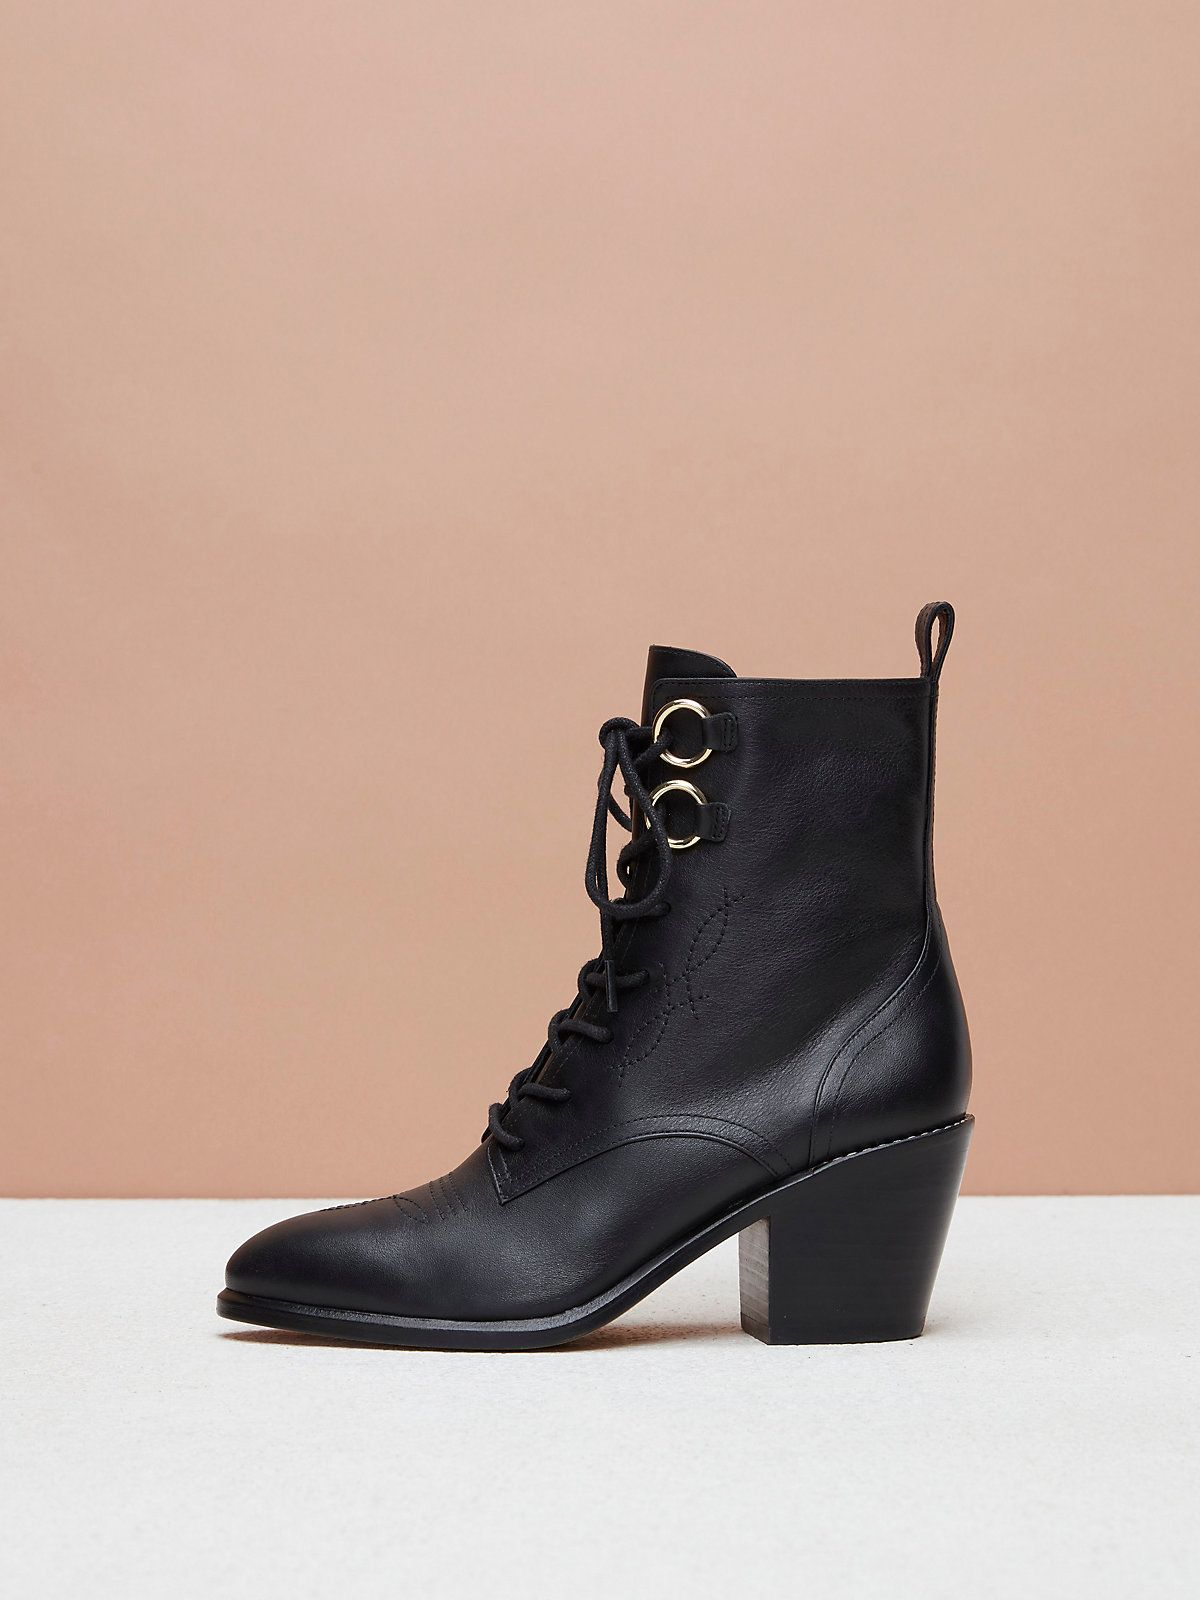 13deacb2f0 Dakota Lace-Up Boots in 2019 | Shoes | Boots, Lace up boots, Black ...